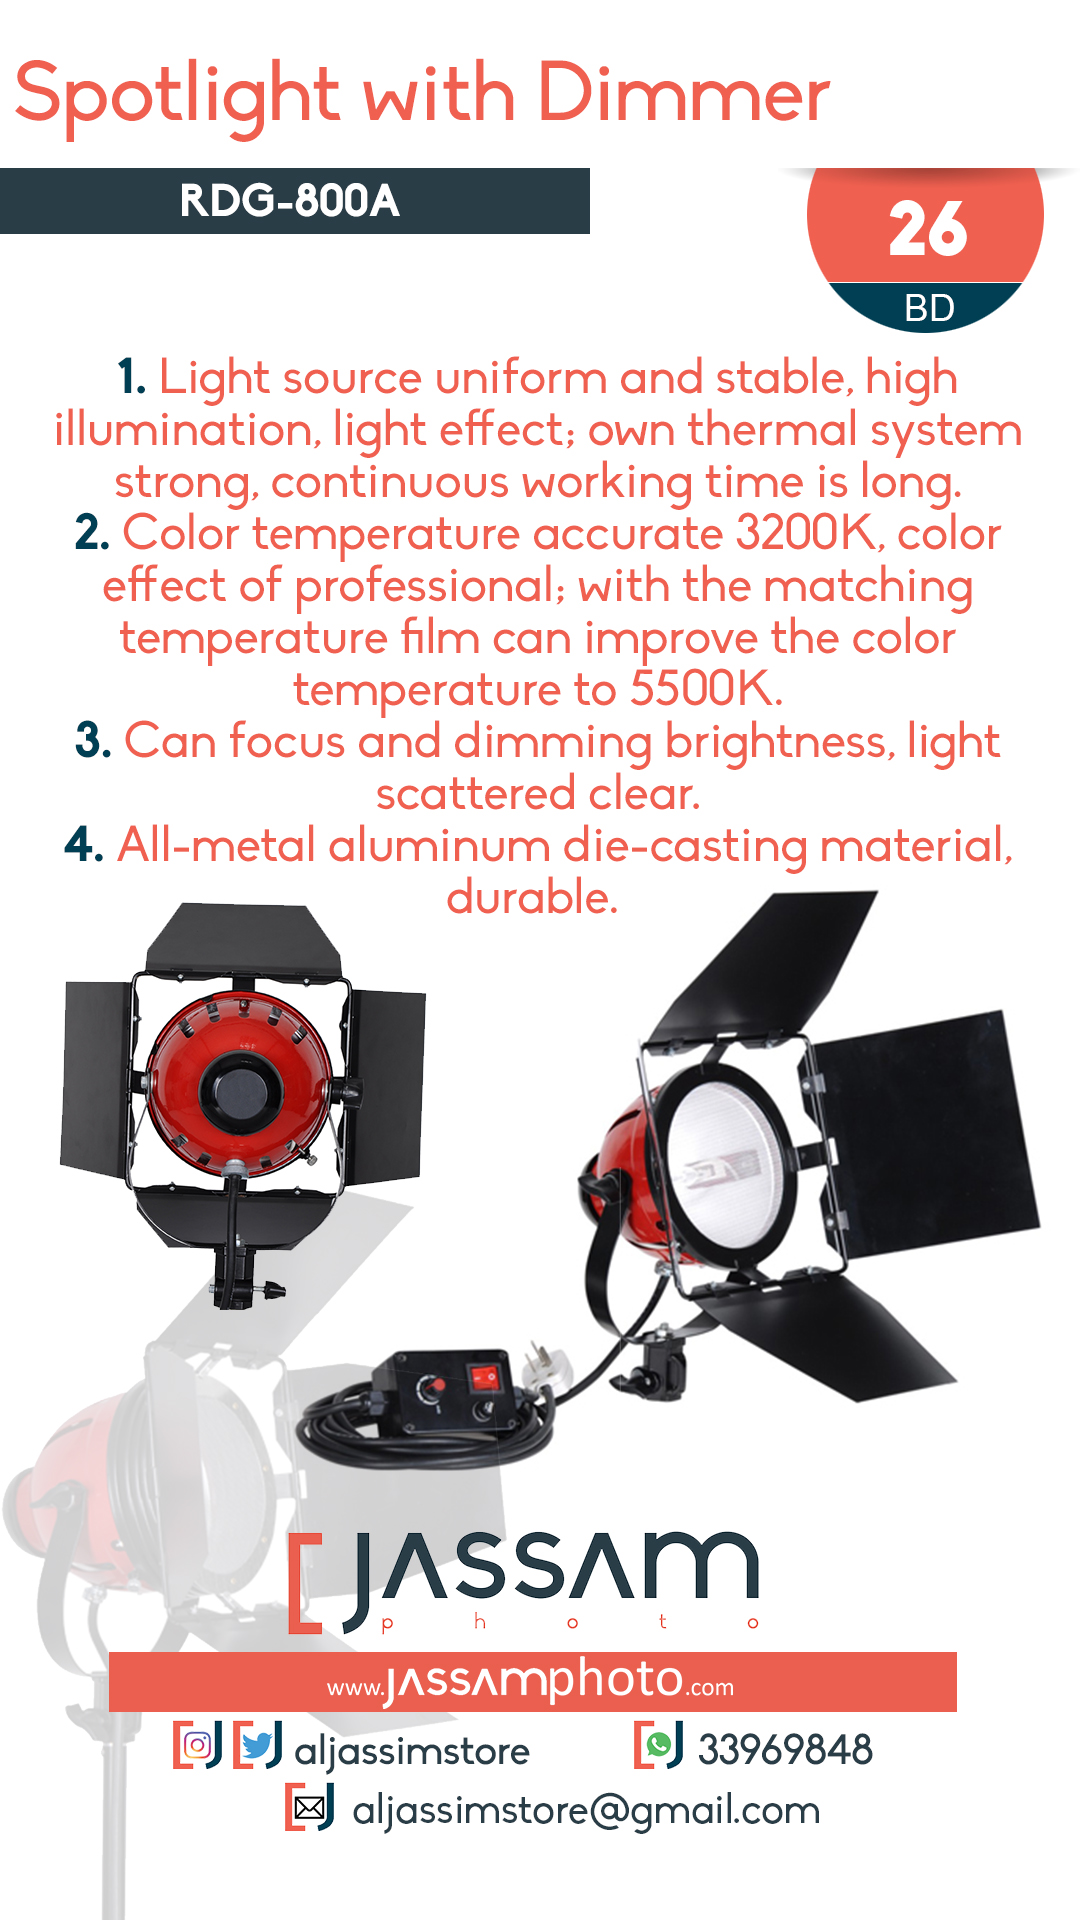 Spotlight with Dimmer RDG-800A